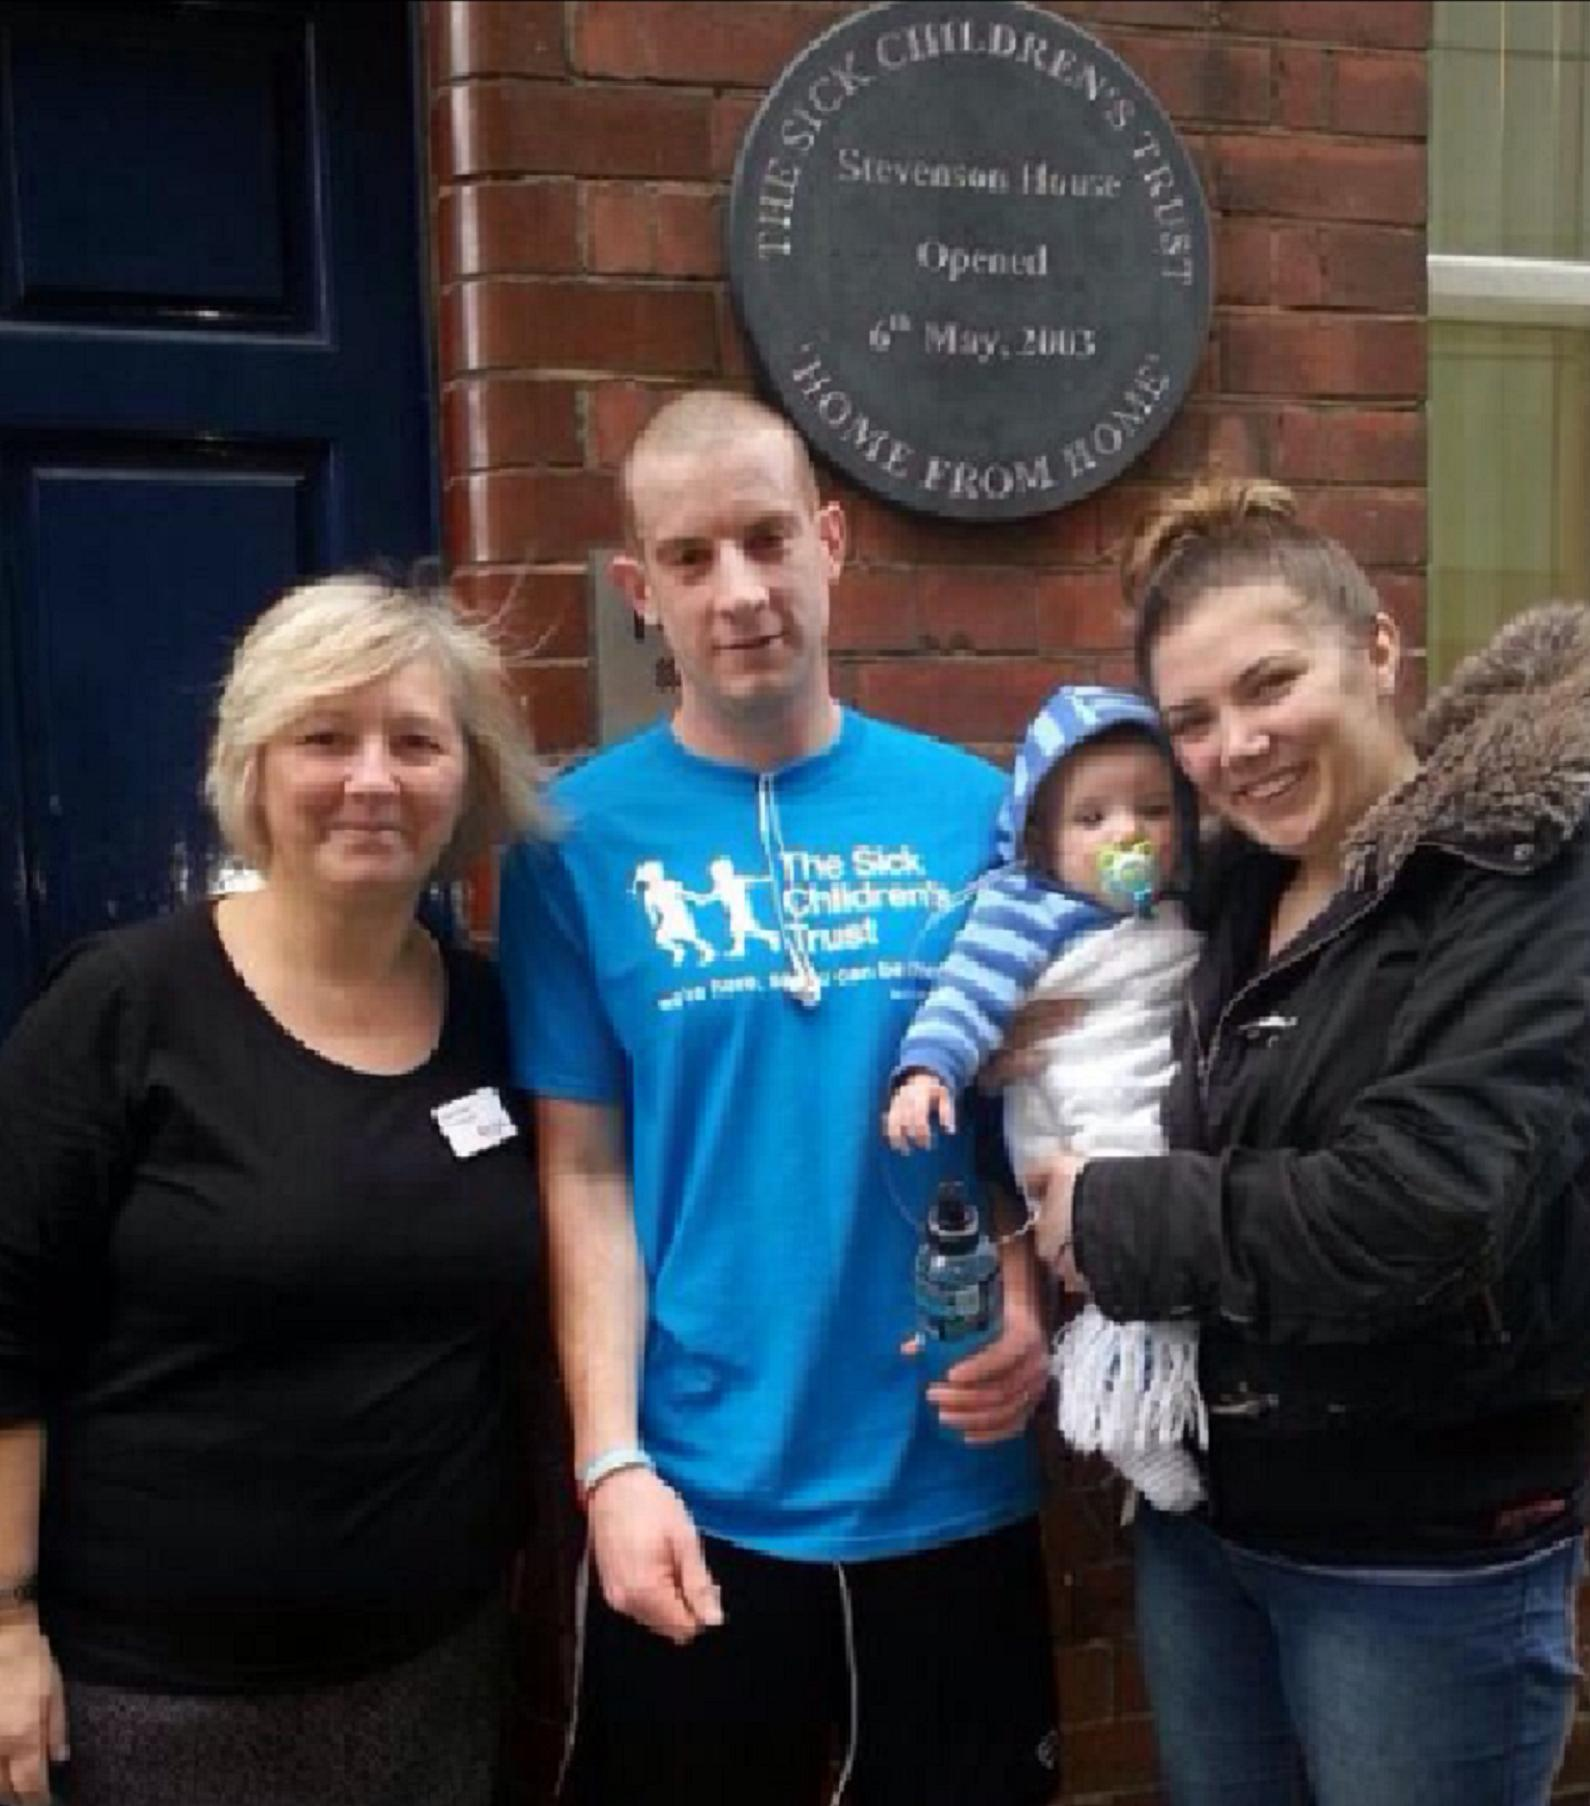 Greg at Stevenson House with Aly and Bradley and Joan Coker, House Manager of Stevenson House.